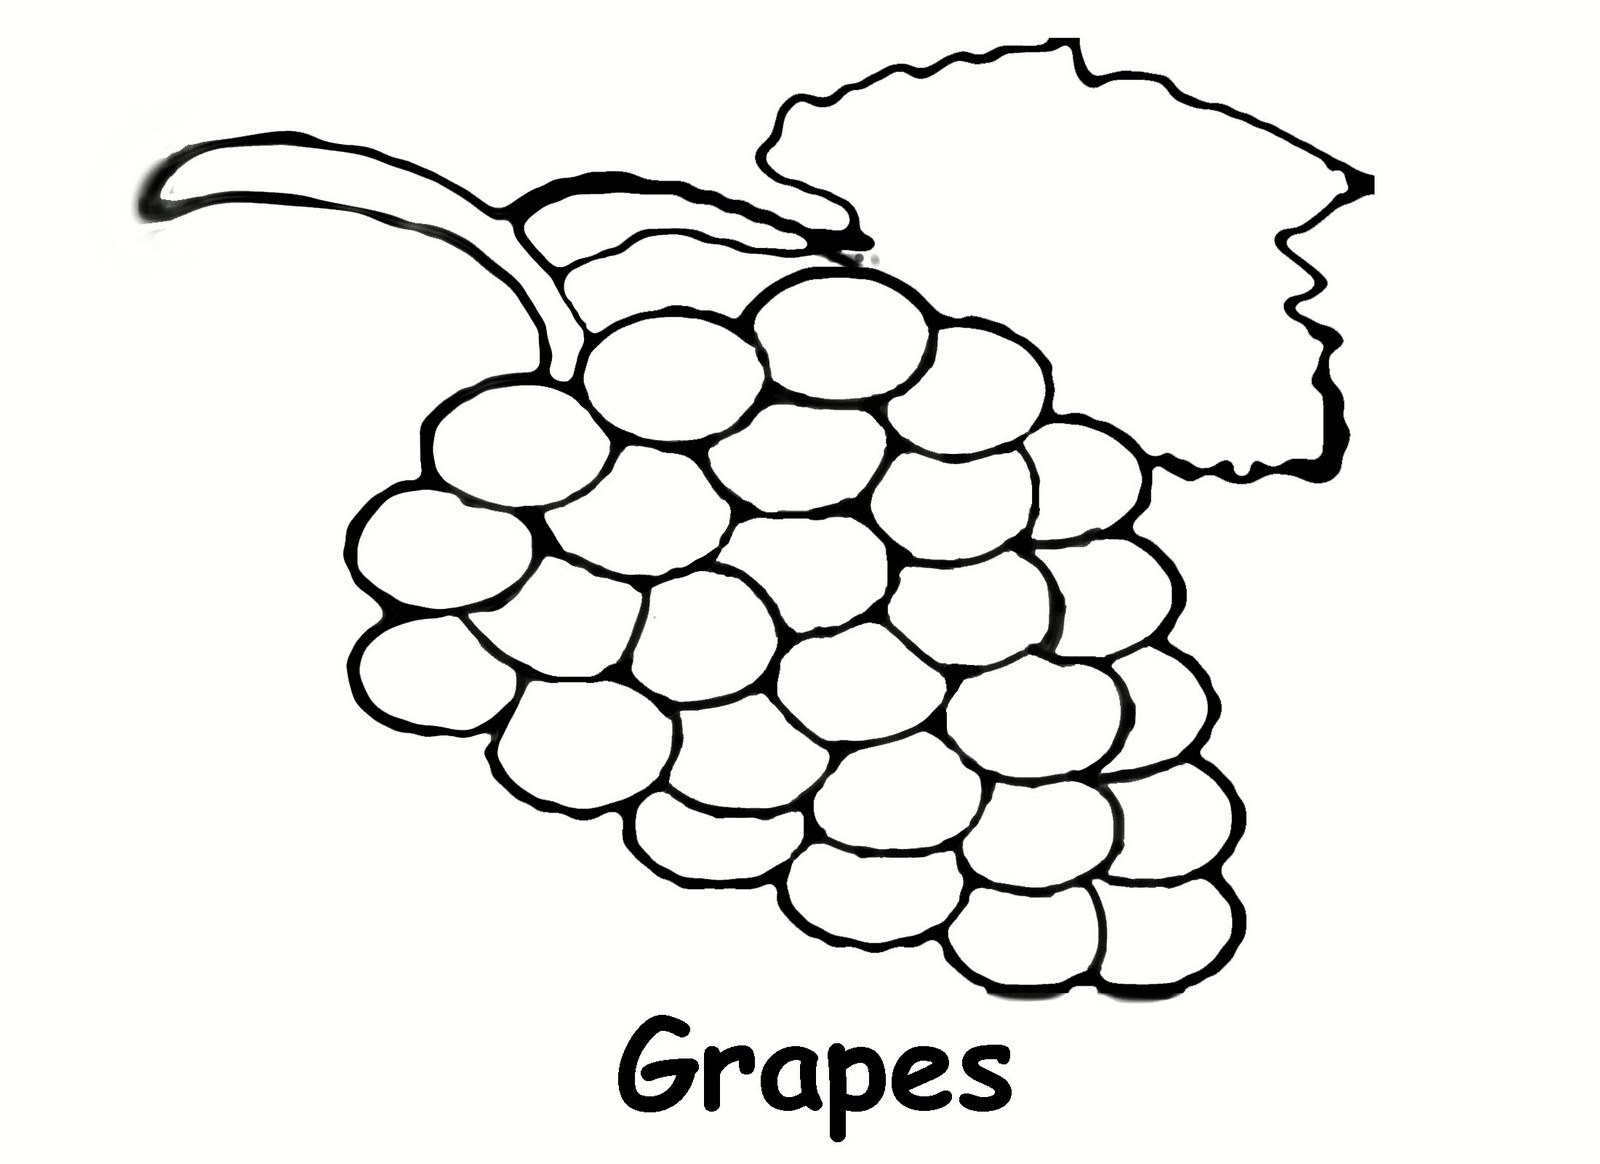 grape coloring pages - photo#9